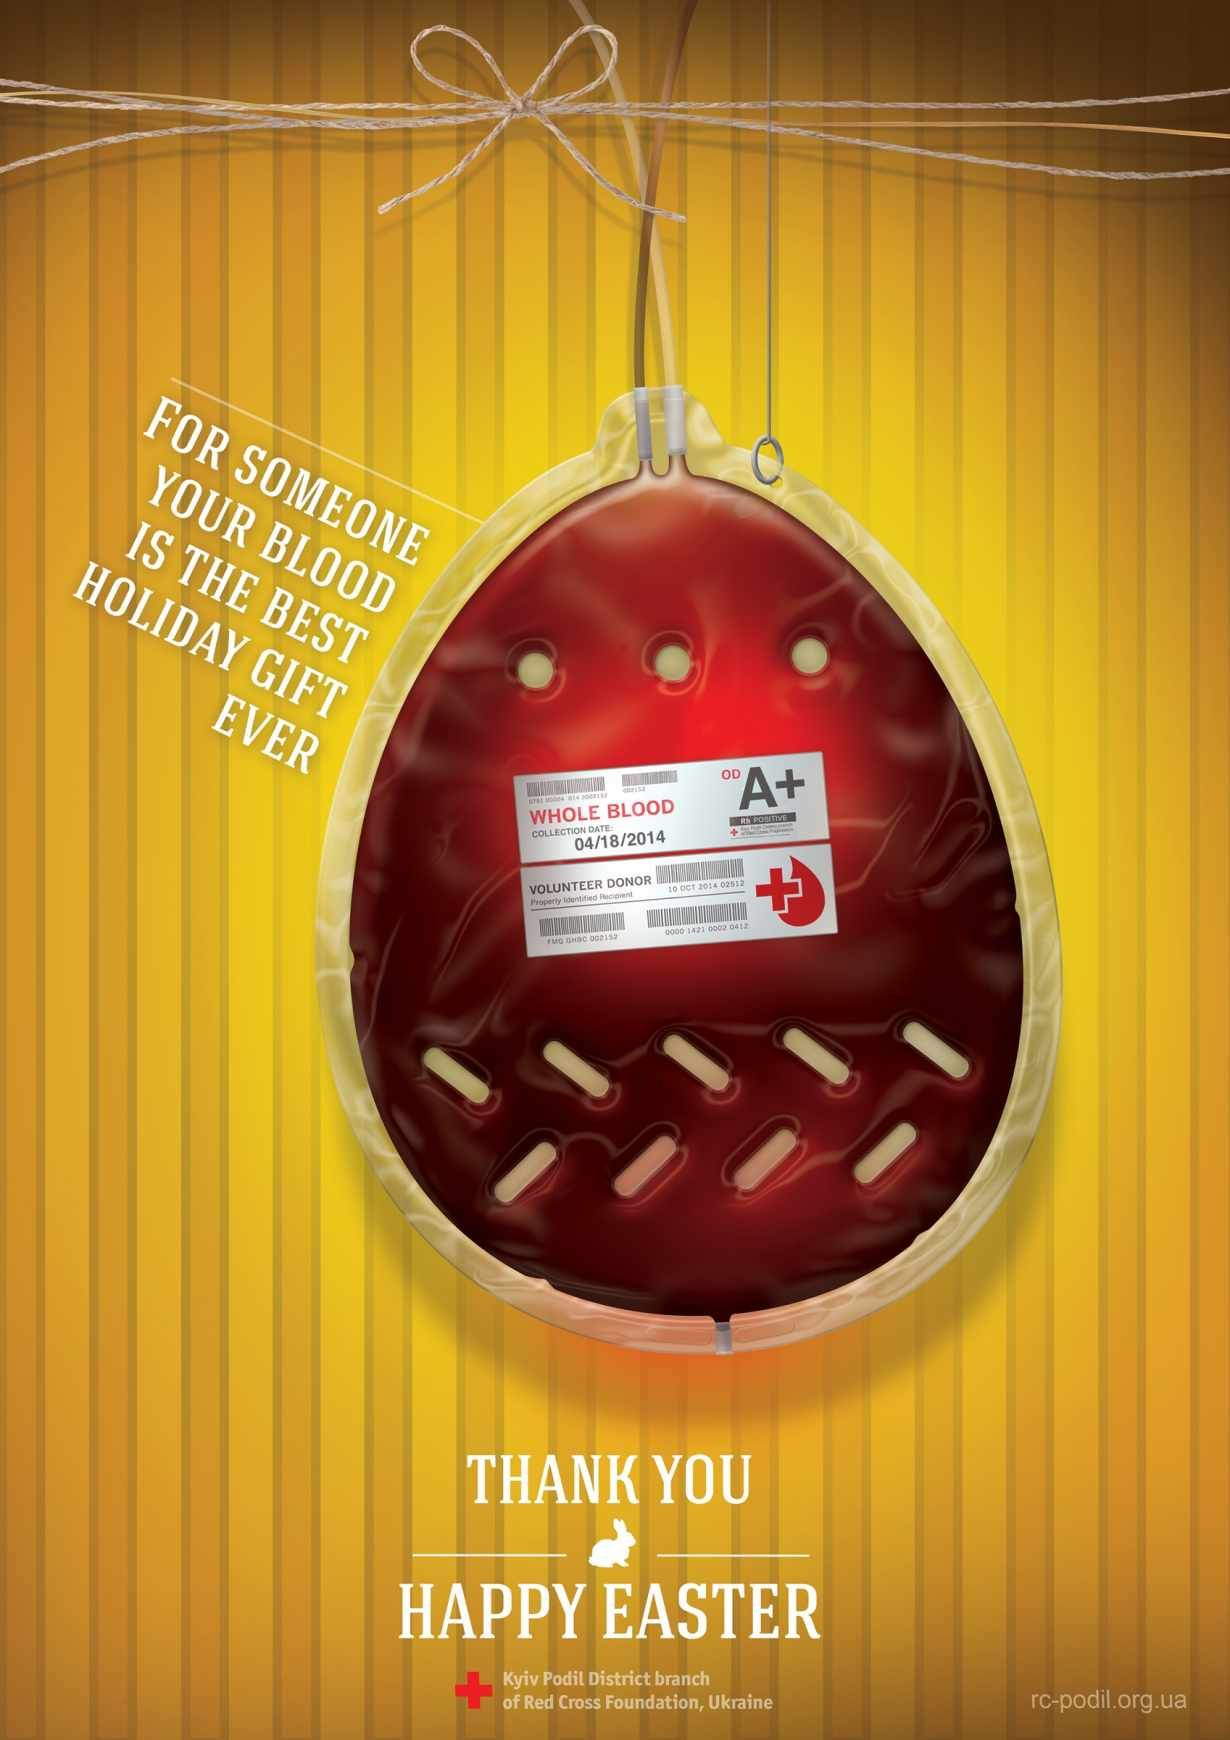 For someone your blood is the best holiday gift ever